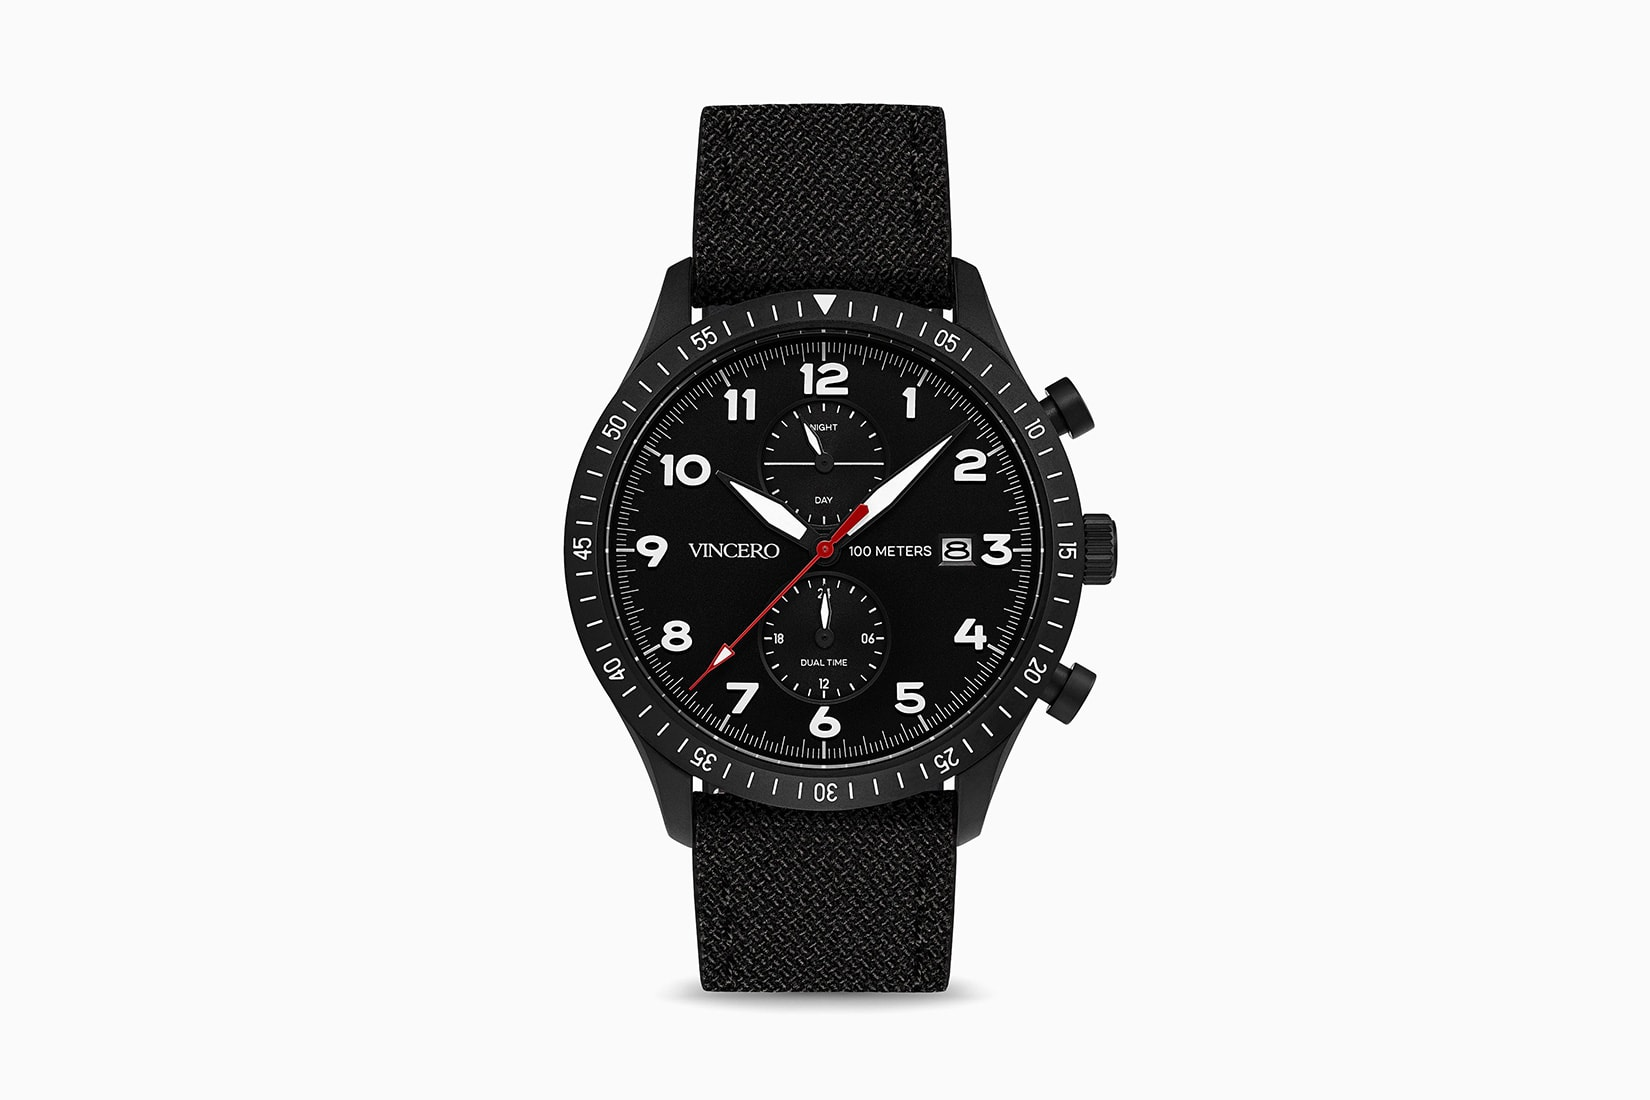 Vincero altitude watches review - Luxe Digital